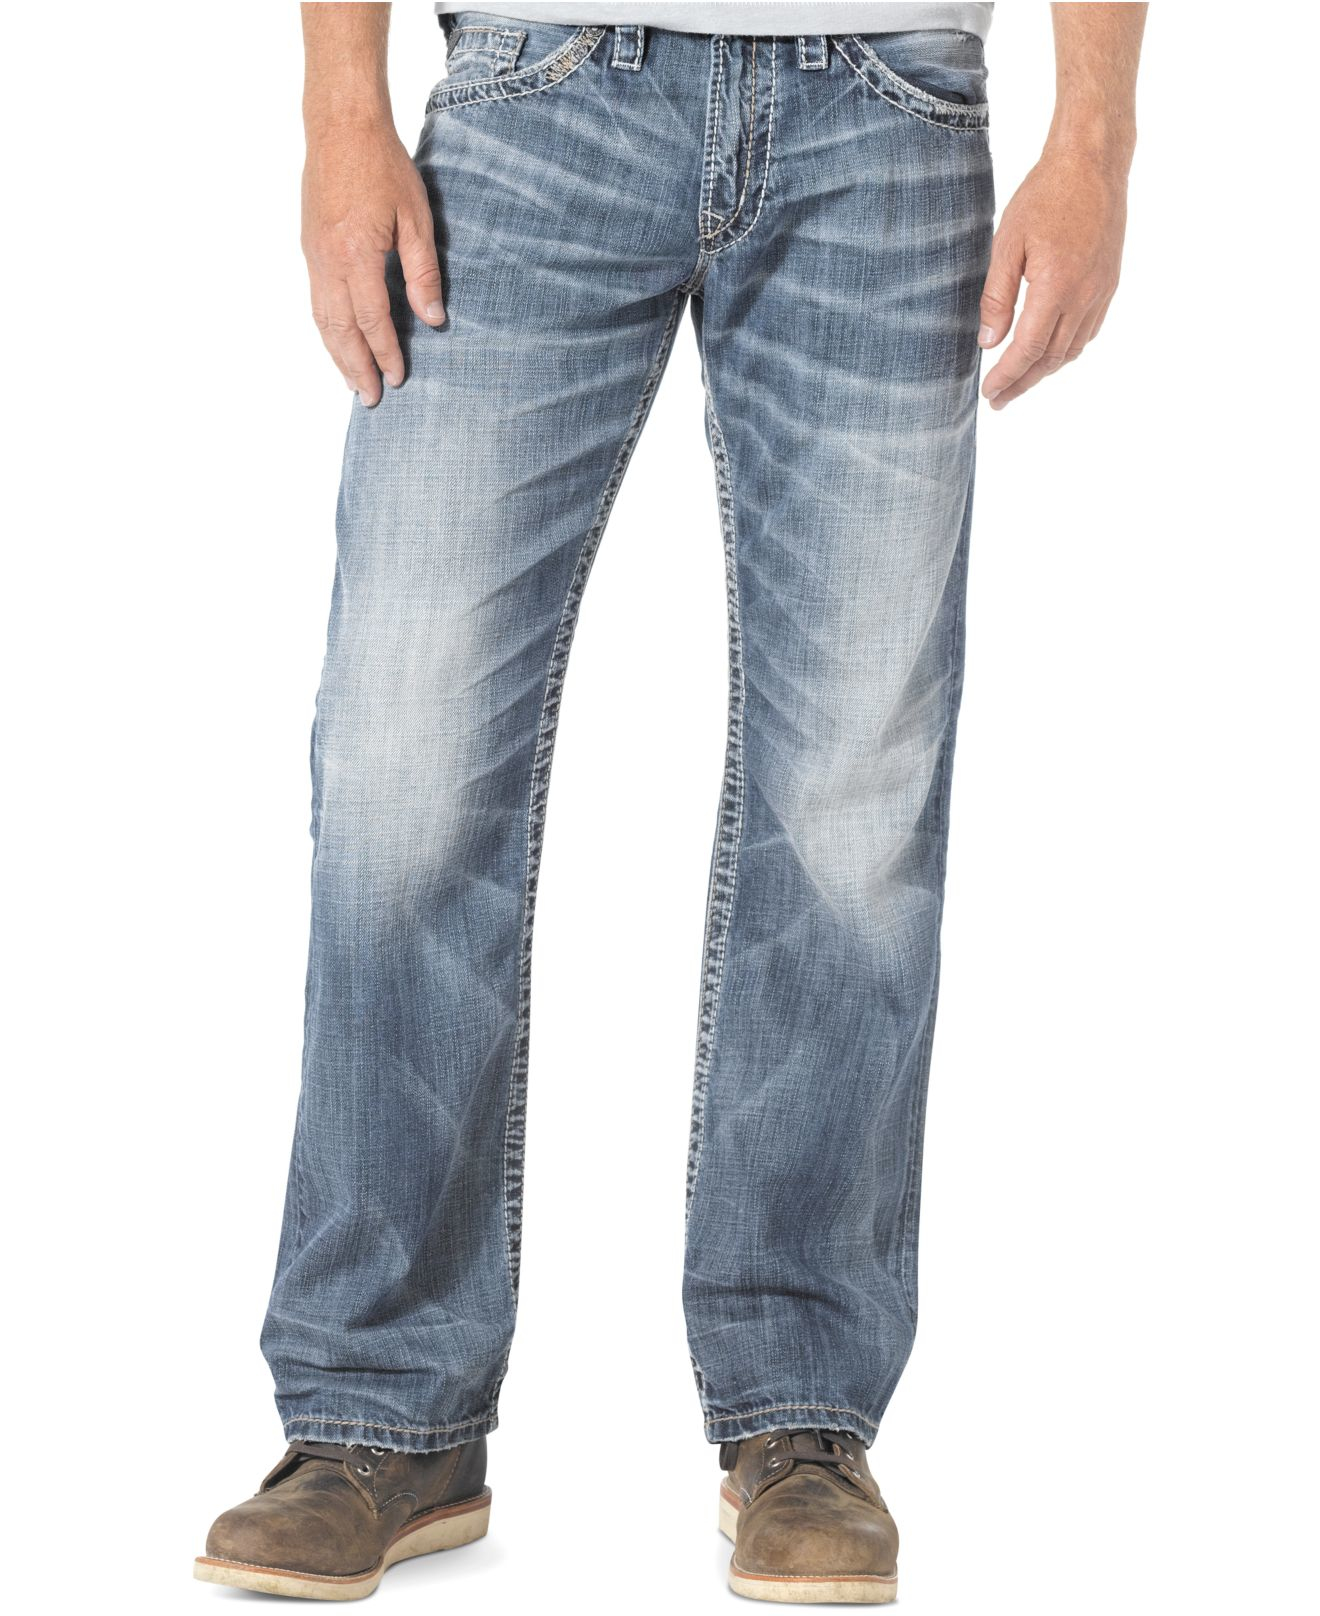 QUALITY MATERIAL - The Silver Jeans Co. Men's Zac Denim Pants are Silver Jeans Offer: Free 2-day shipping for all Prime members.